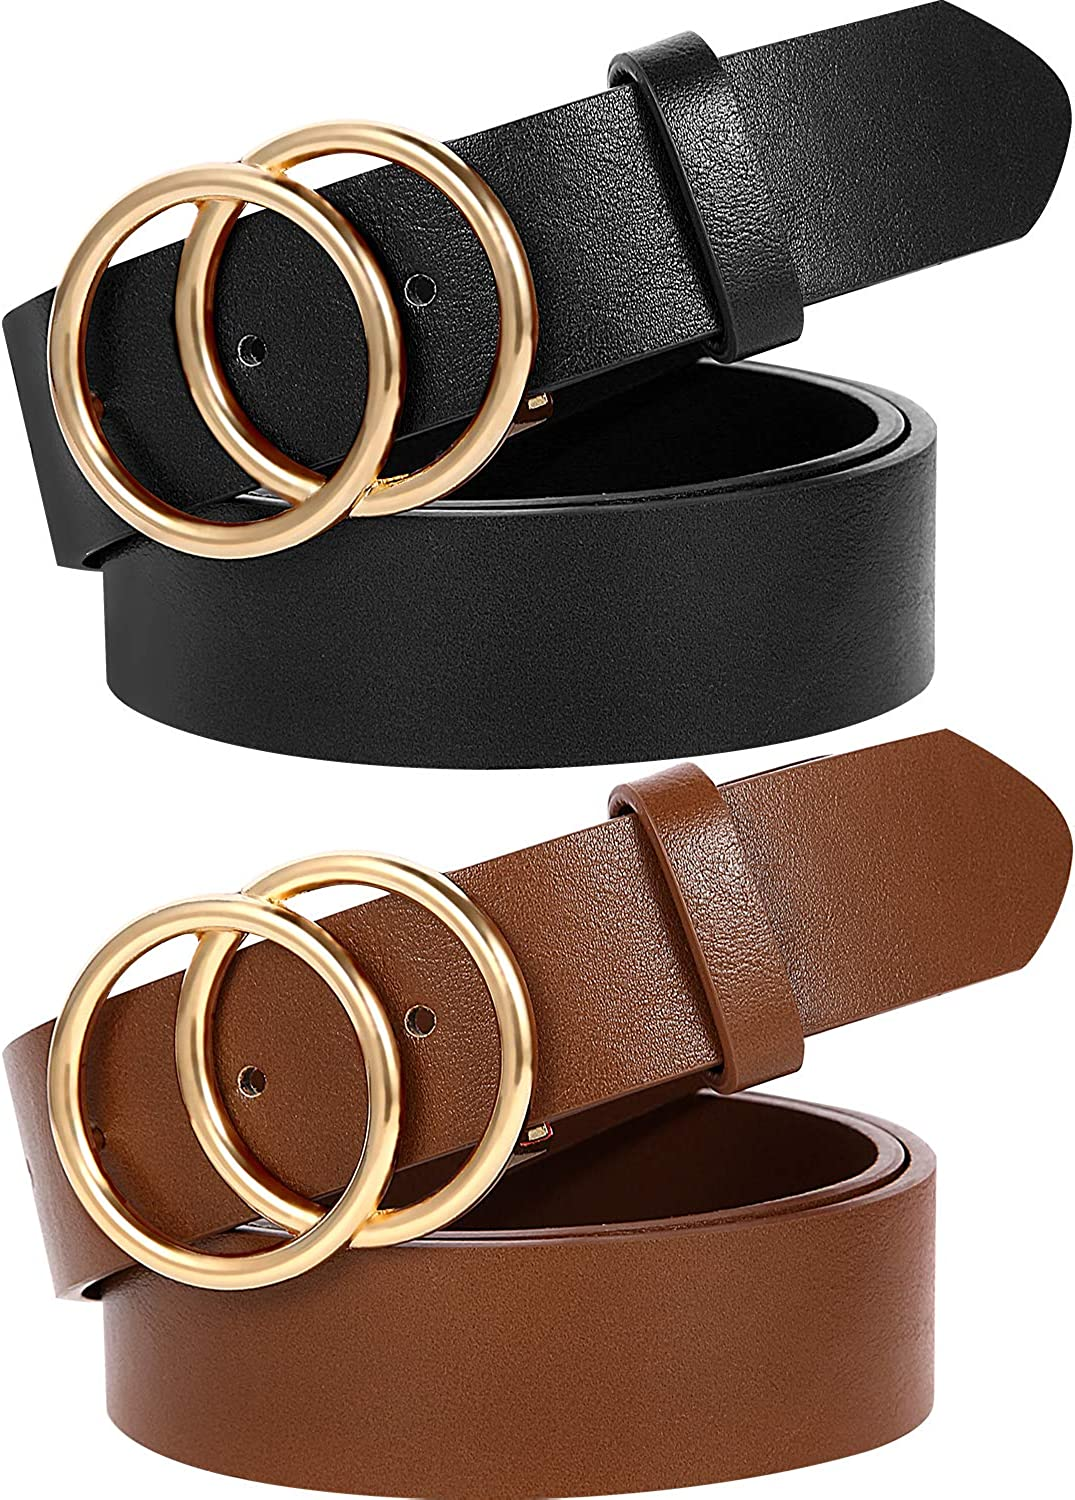 MORELESS 2 Pack Womens Faux Leather Belts for Jeans Belt with Double O-Ring Buckle